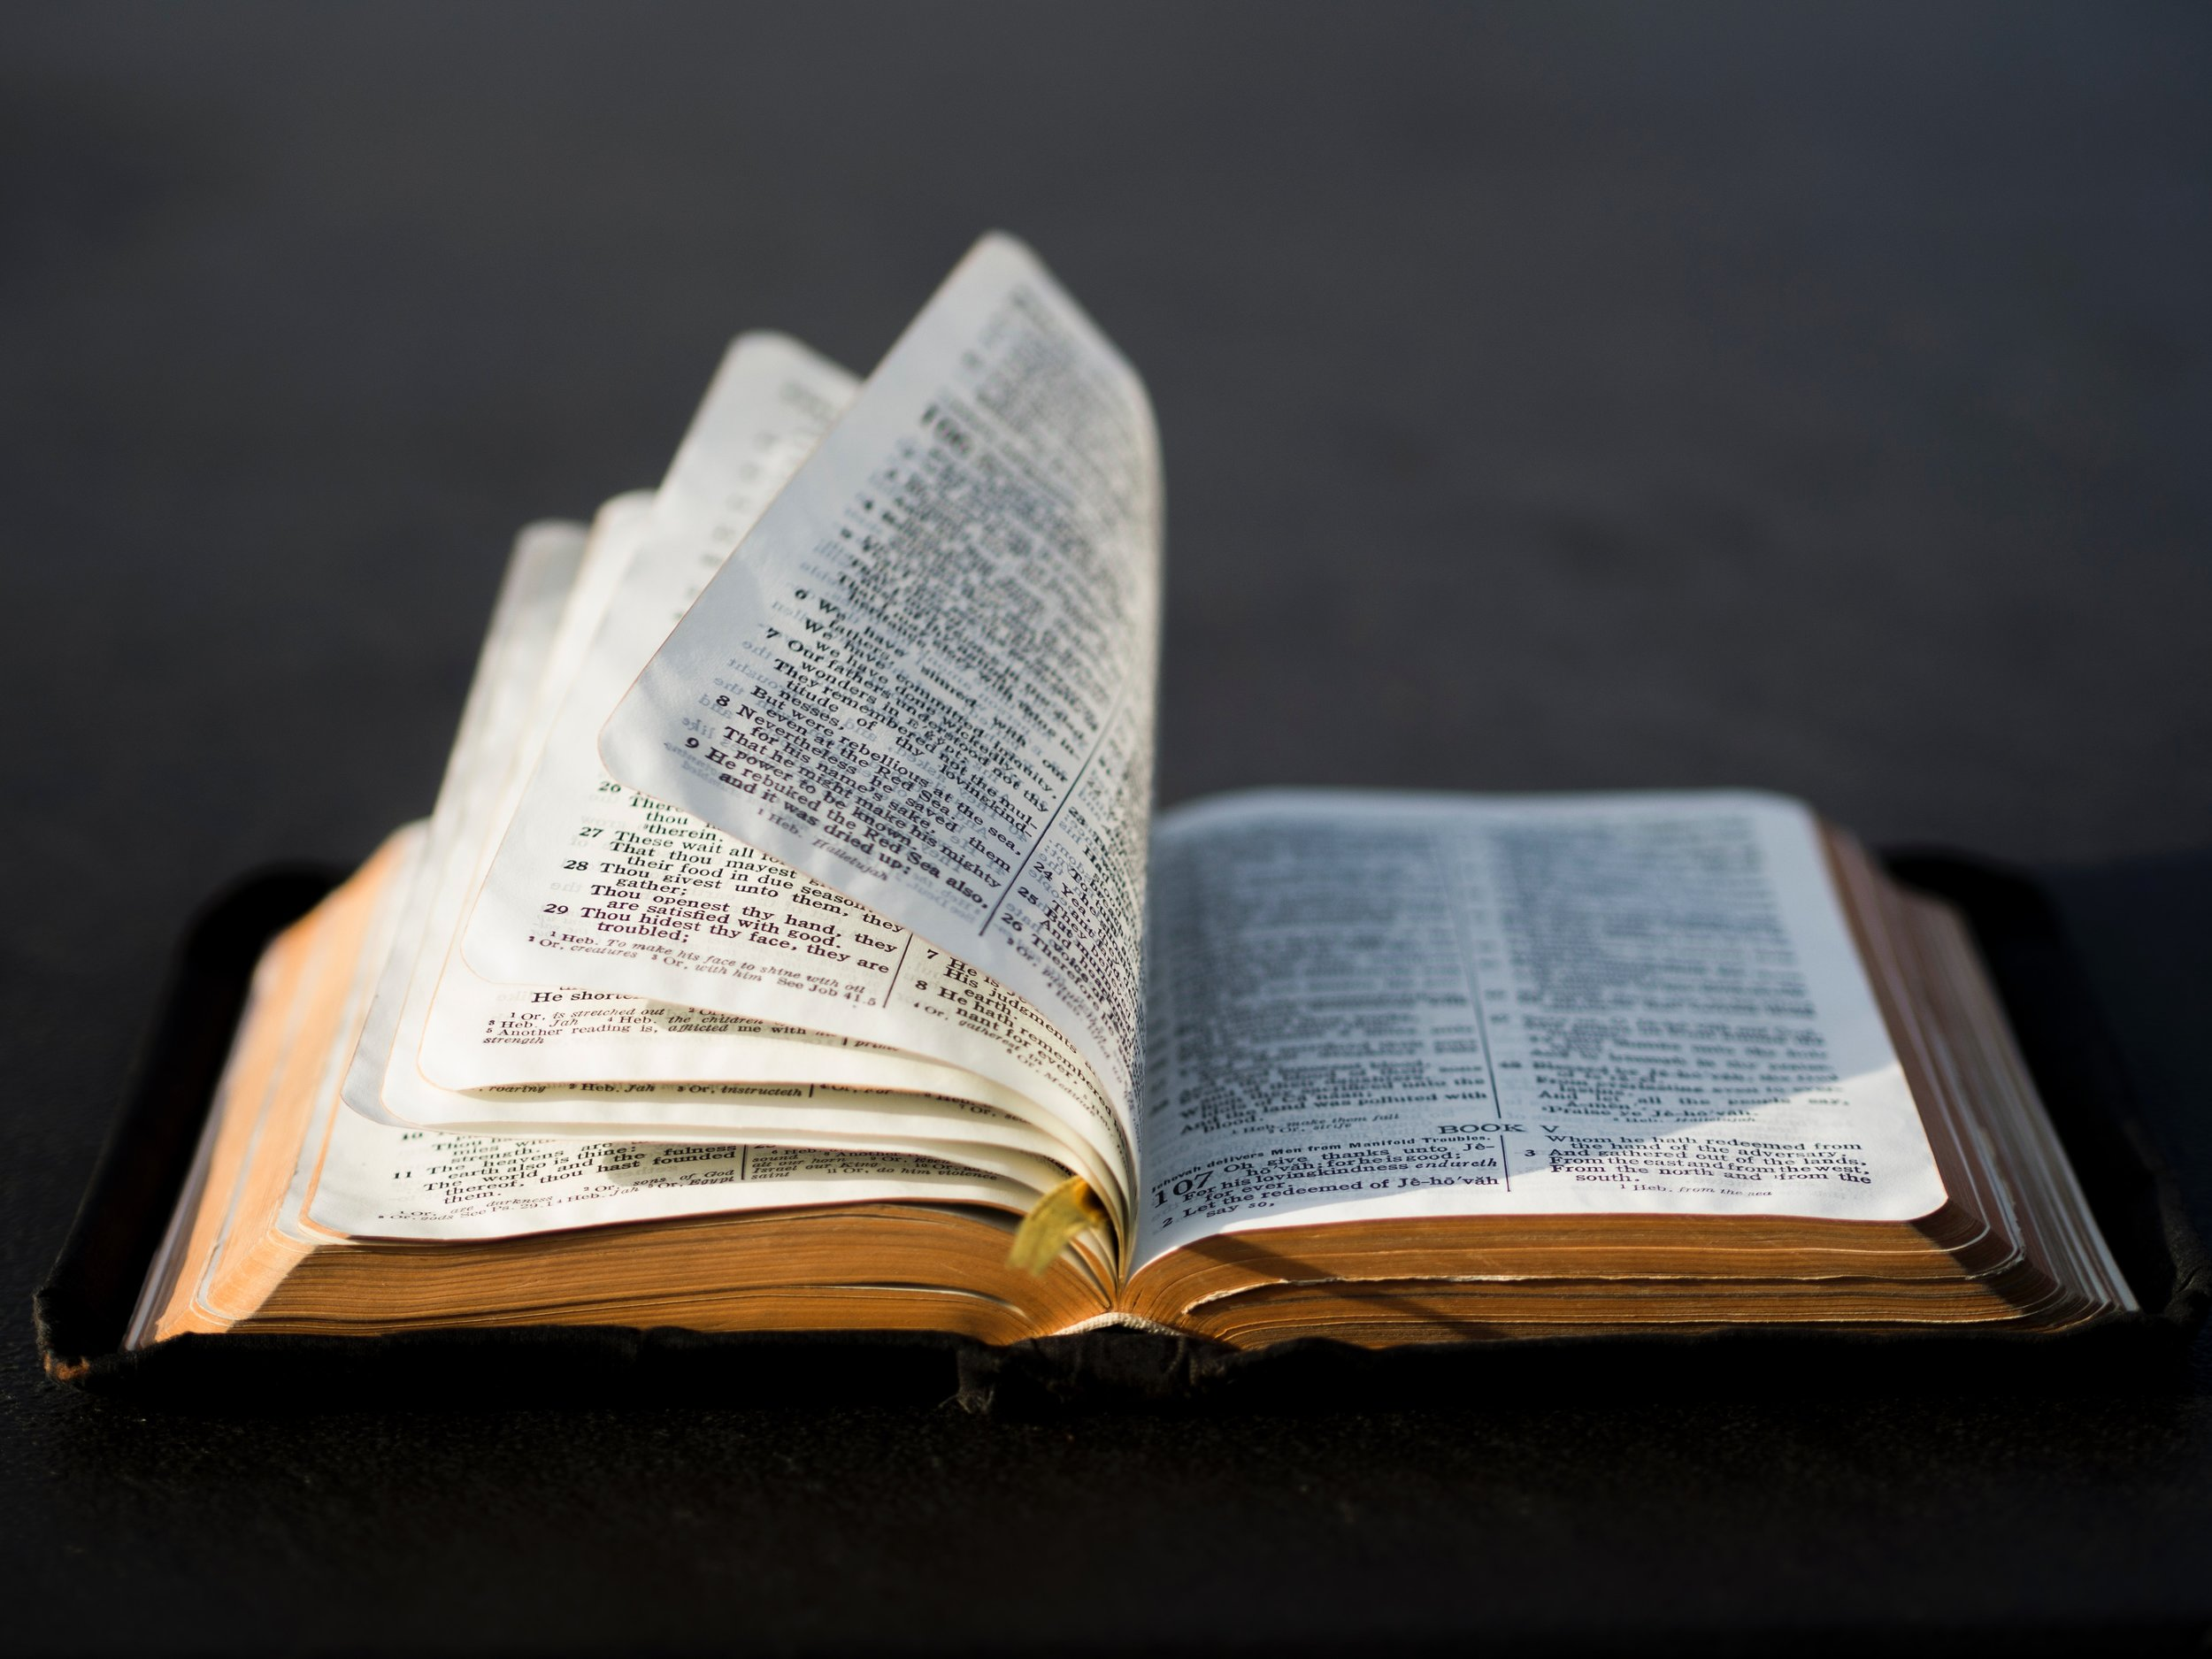 Scripture - We believe that the entire Bible is the inspired, infallible, and authoritative Word of God.